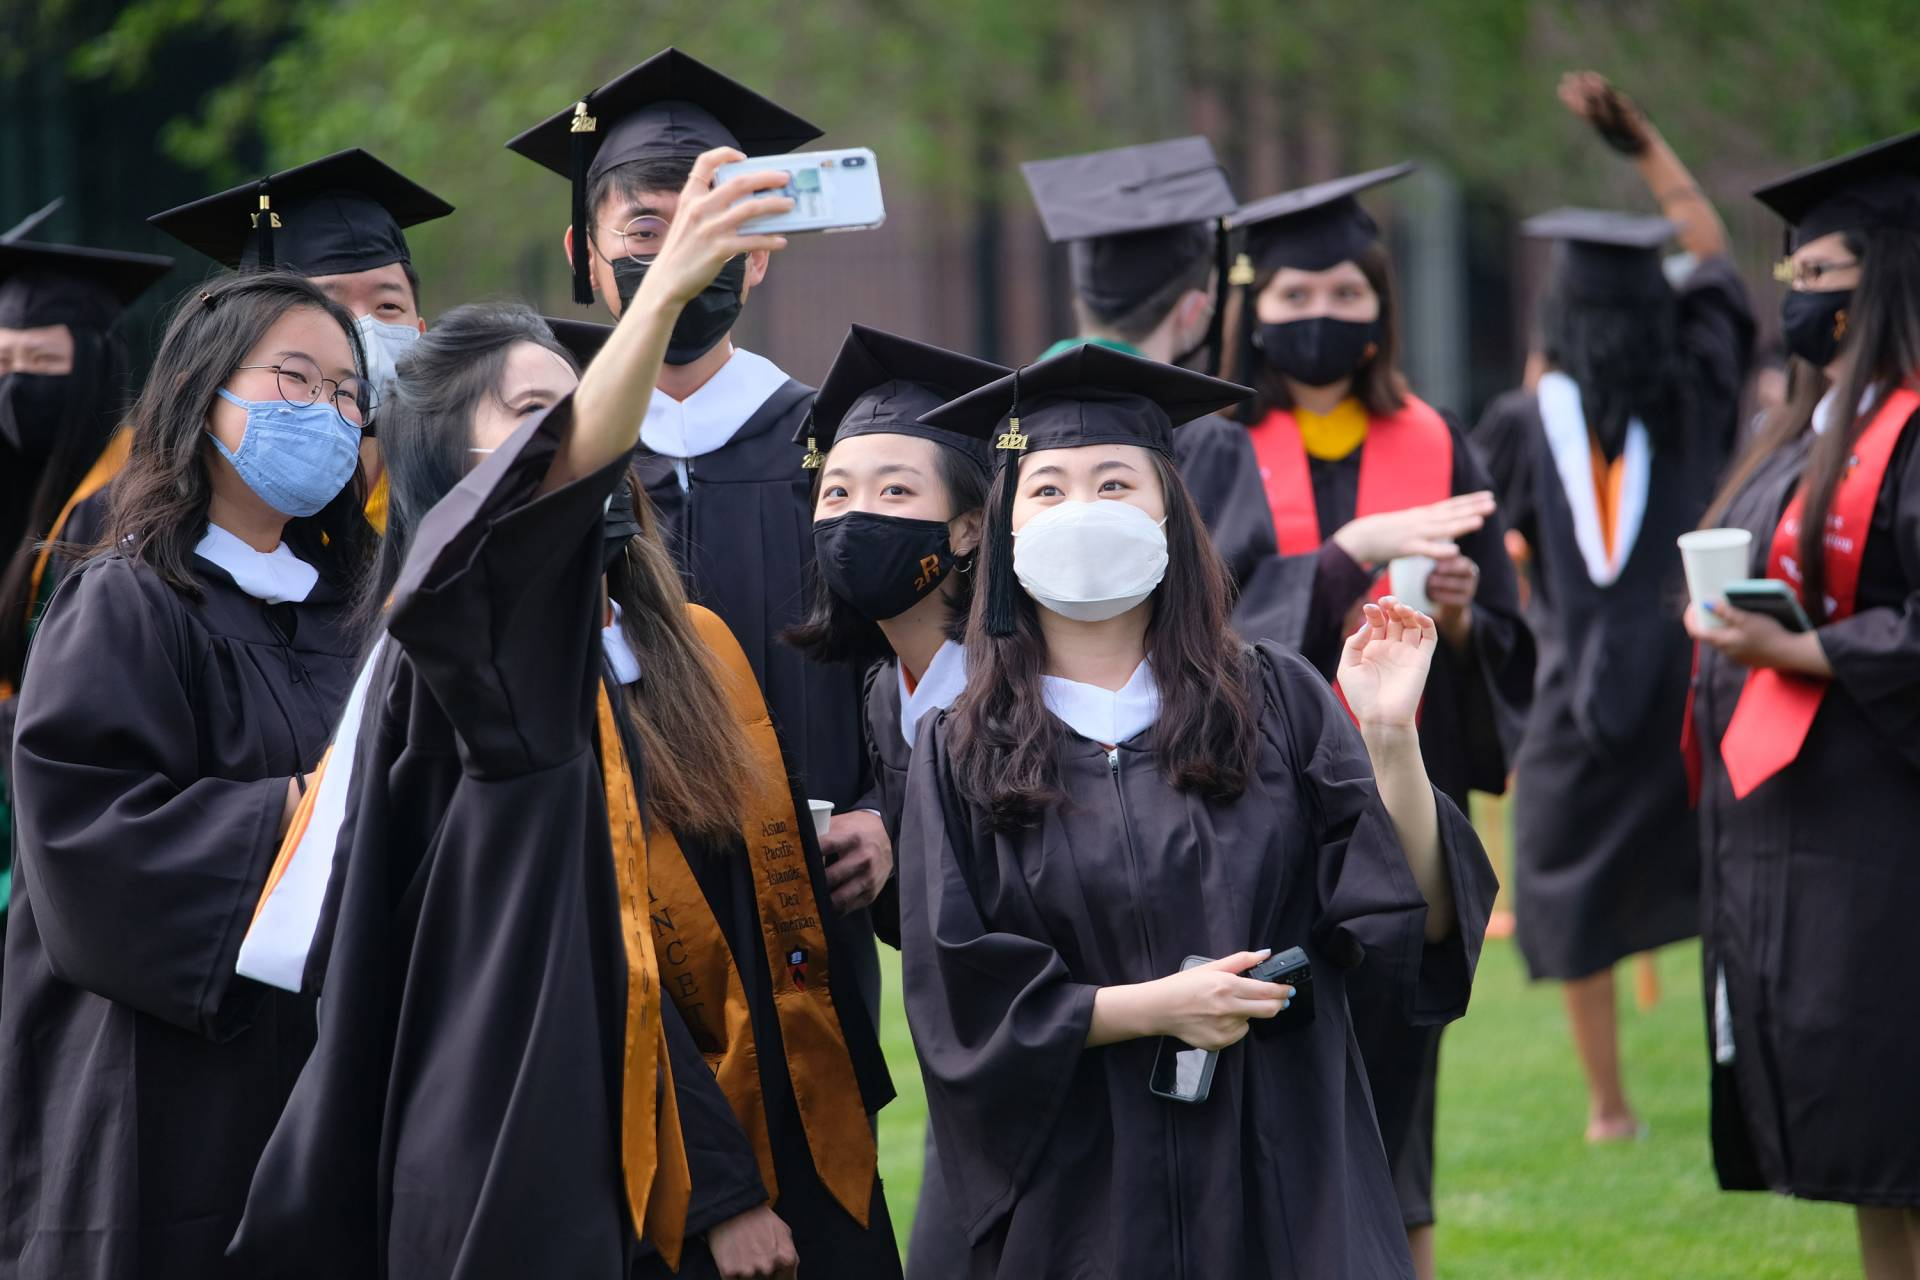 A group of graduating students pose